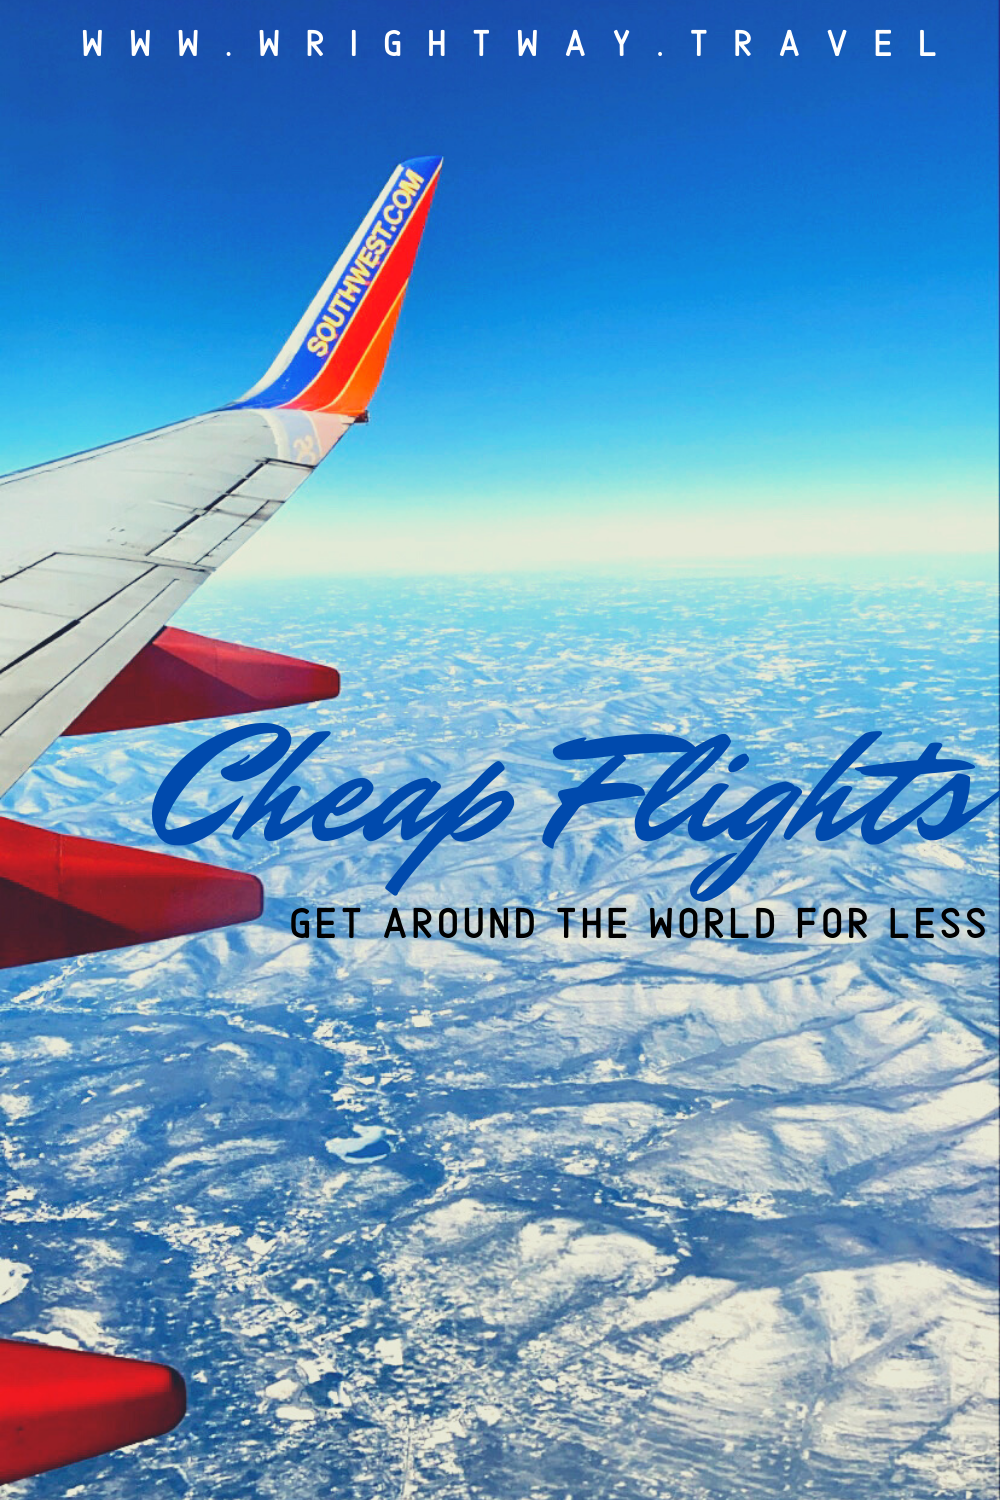 How to book Cheap flights #cheapflights #cheapflightstoeurope #bookingflights #cheapairlines